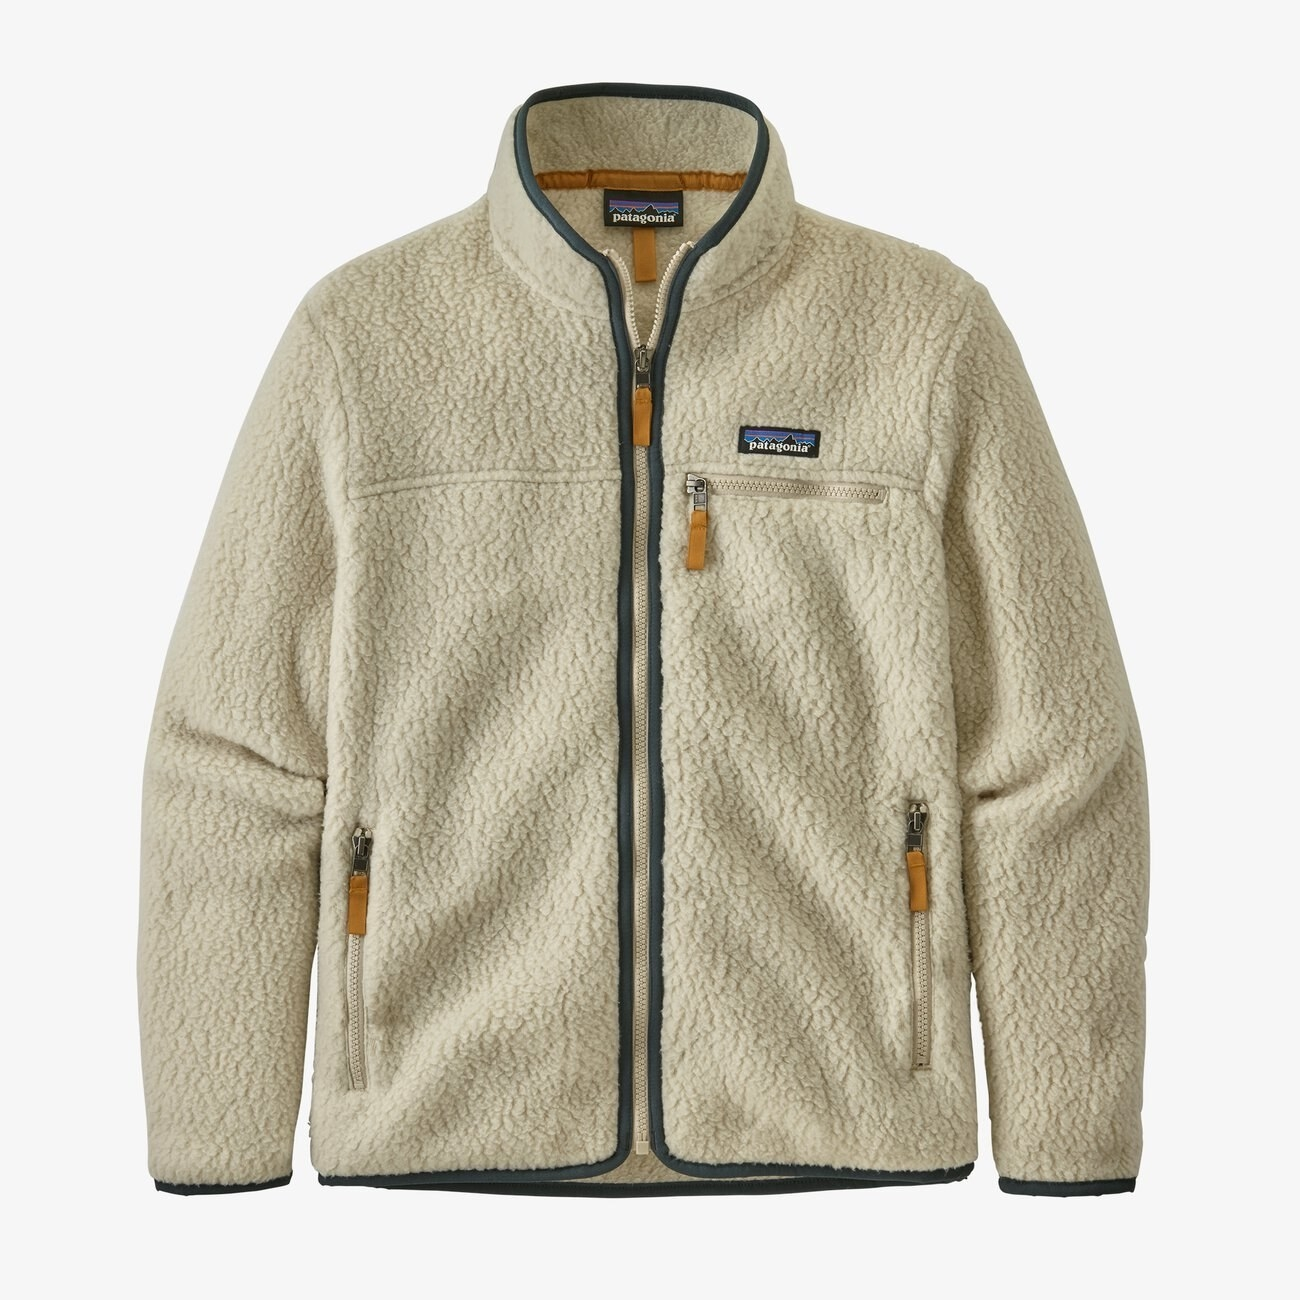 The retro fleece jacket in pelican